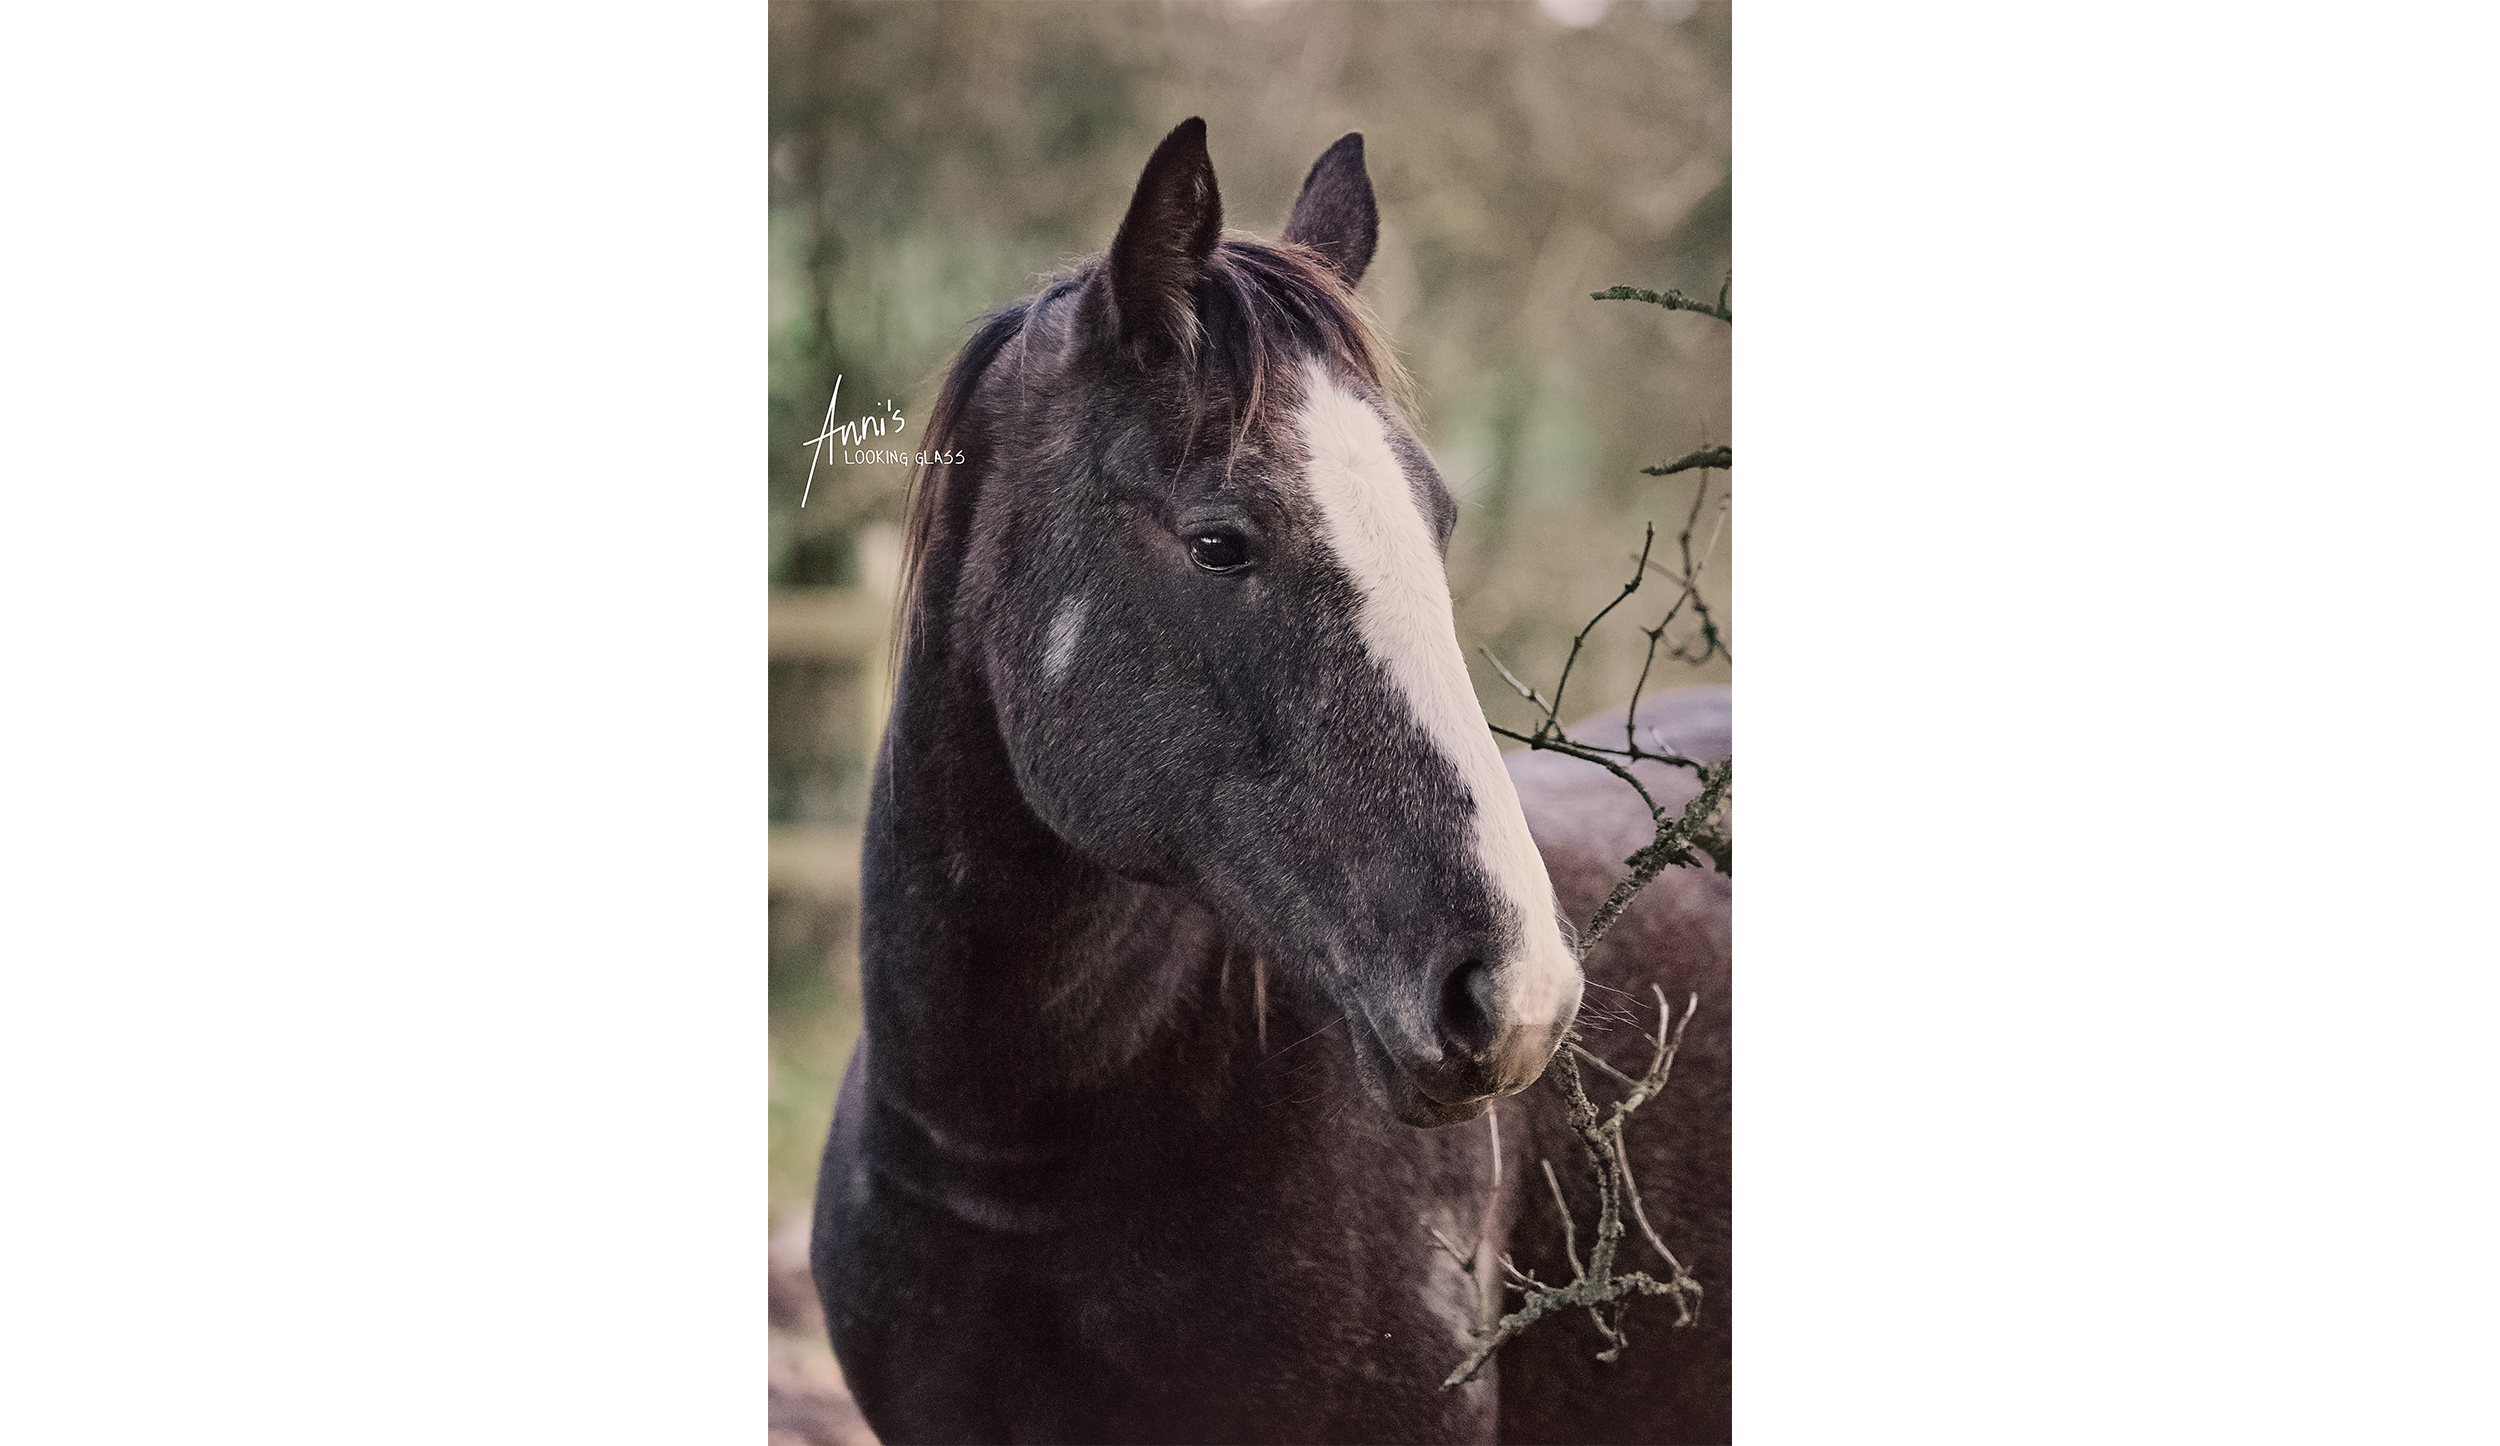 The top spot - of course - goes to the most photographed horse on Earth: My baby, Vanity.